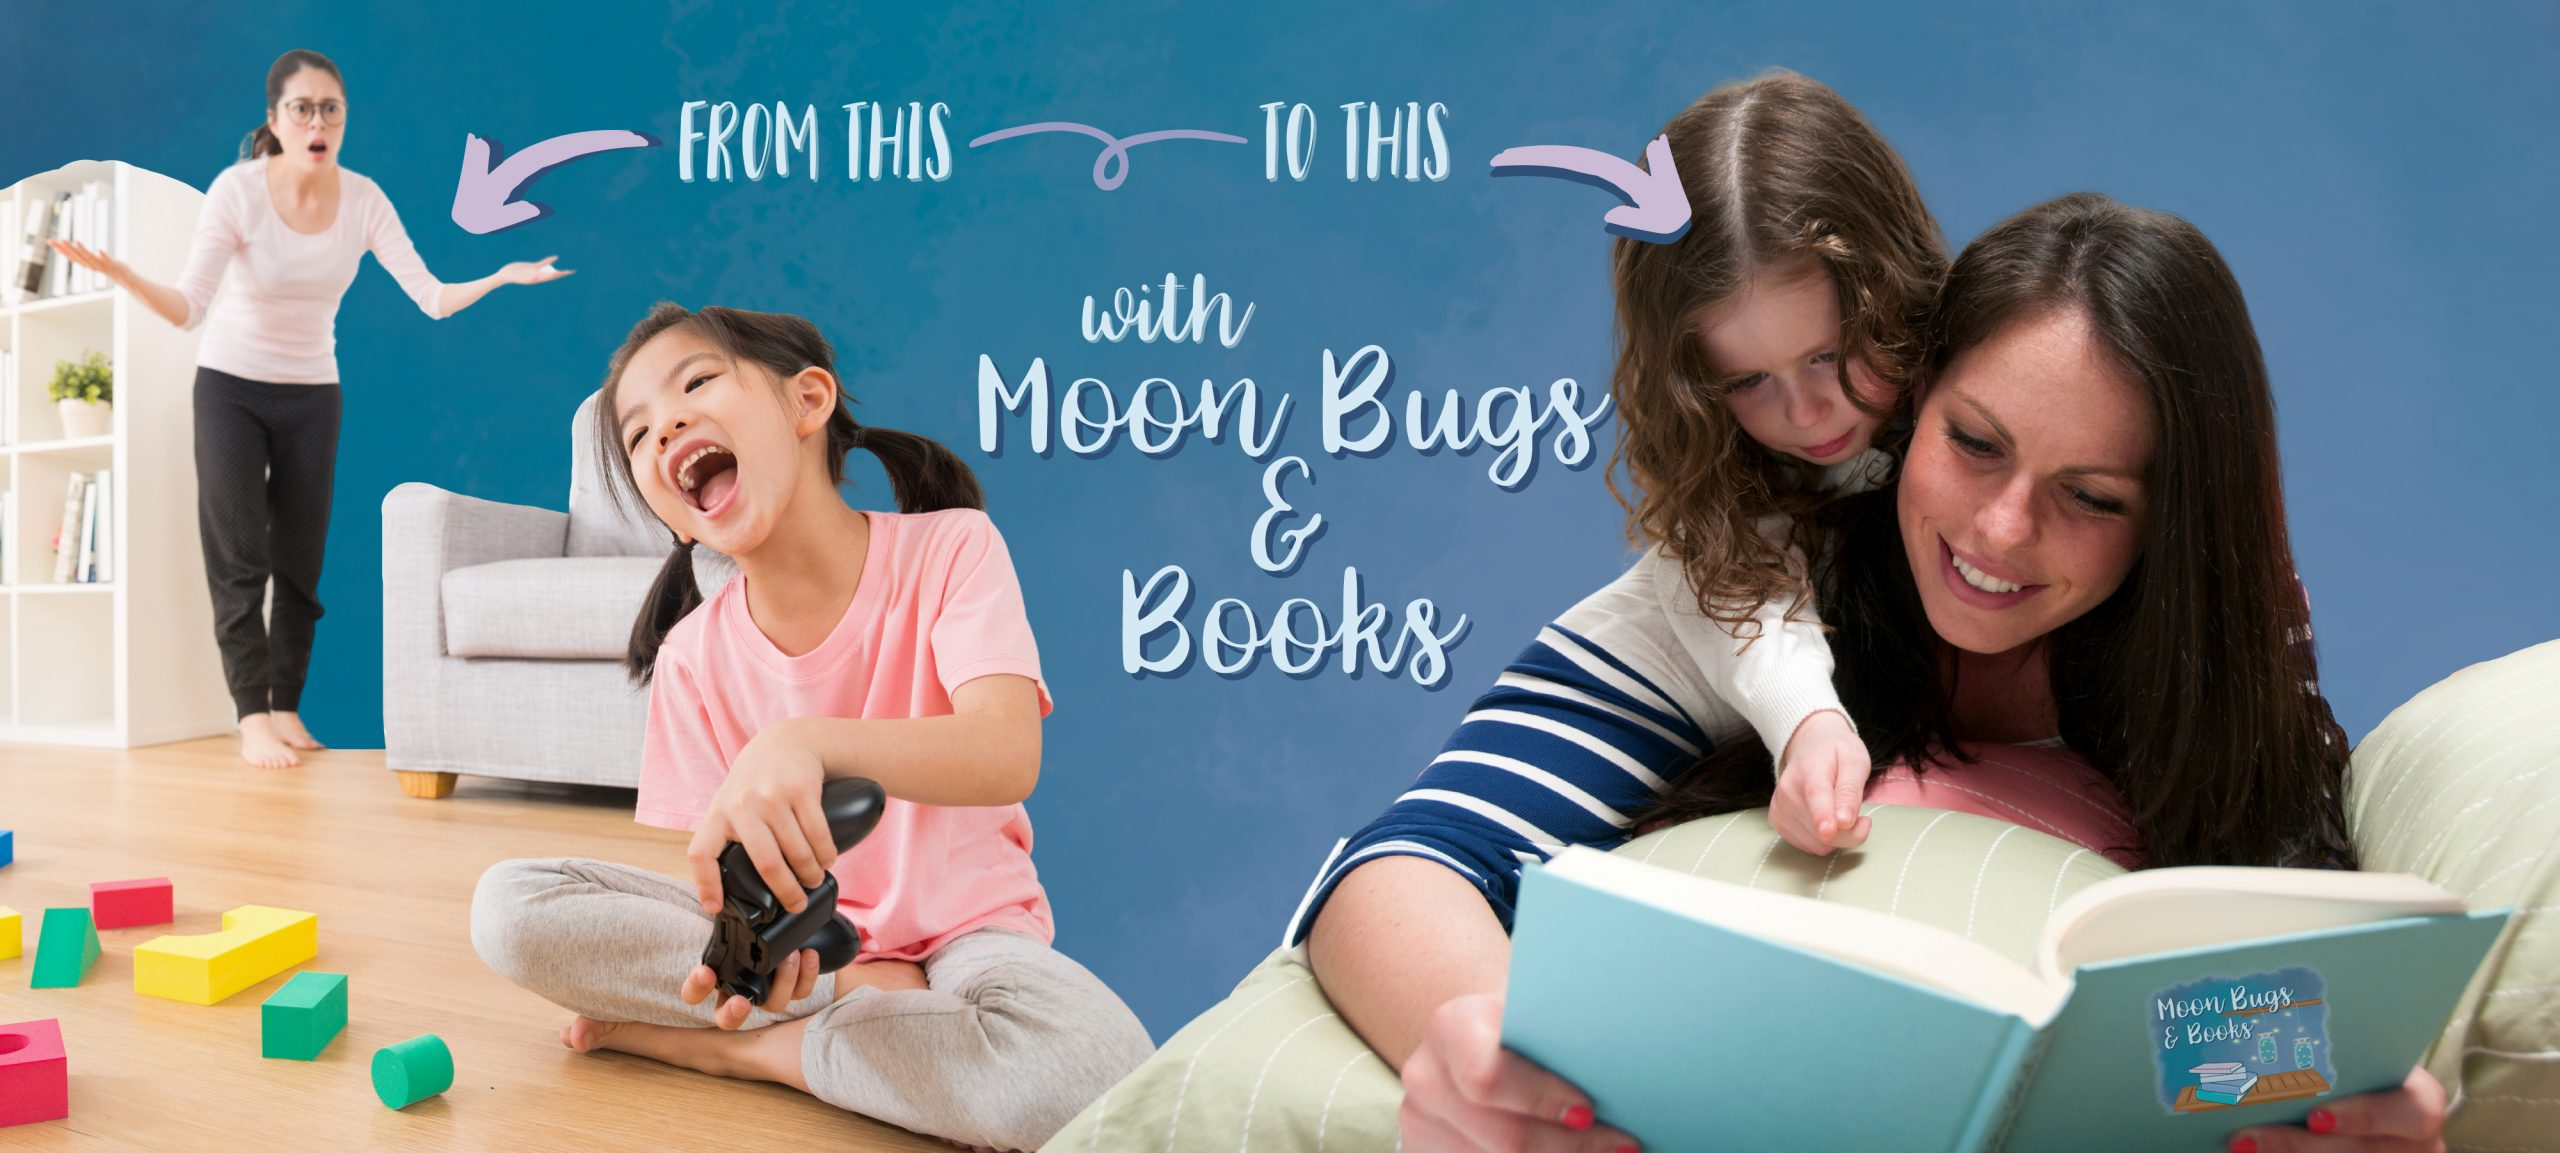 Go from a kid obsessed with video games to a kid interested in reading with Moon Bugs and Books!